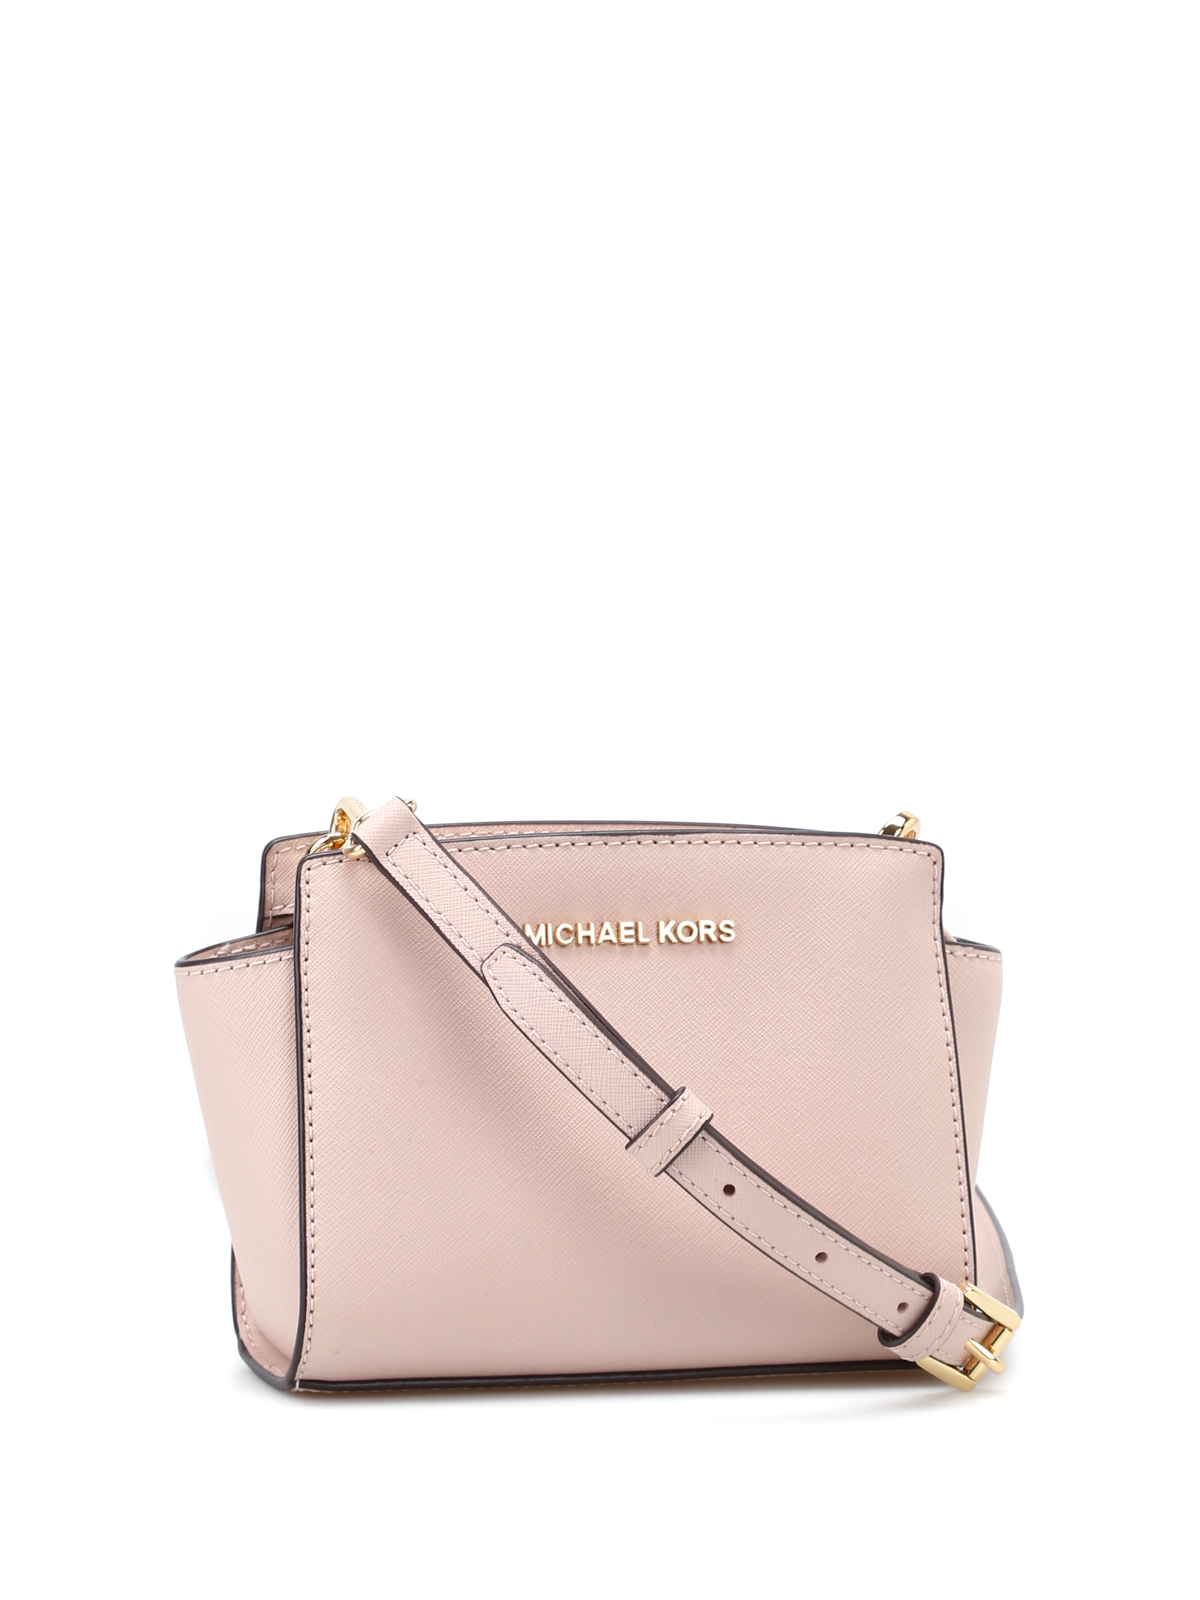 8b3fad81d178f3 ... new arrivals michael kors cross body bags online selma mini soft pink messenger  bag ac130 73a6c